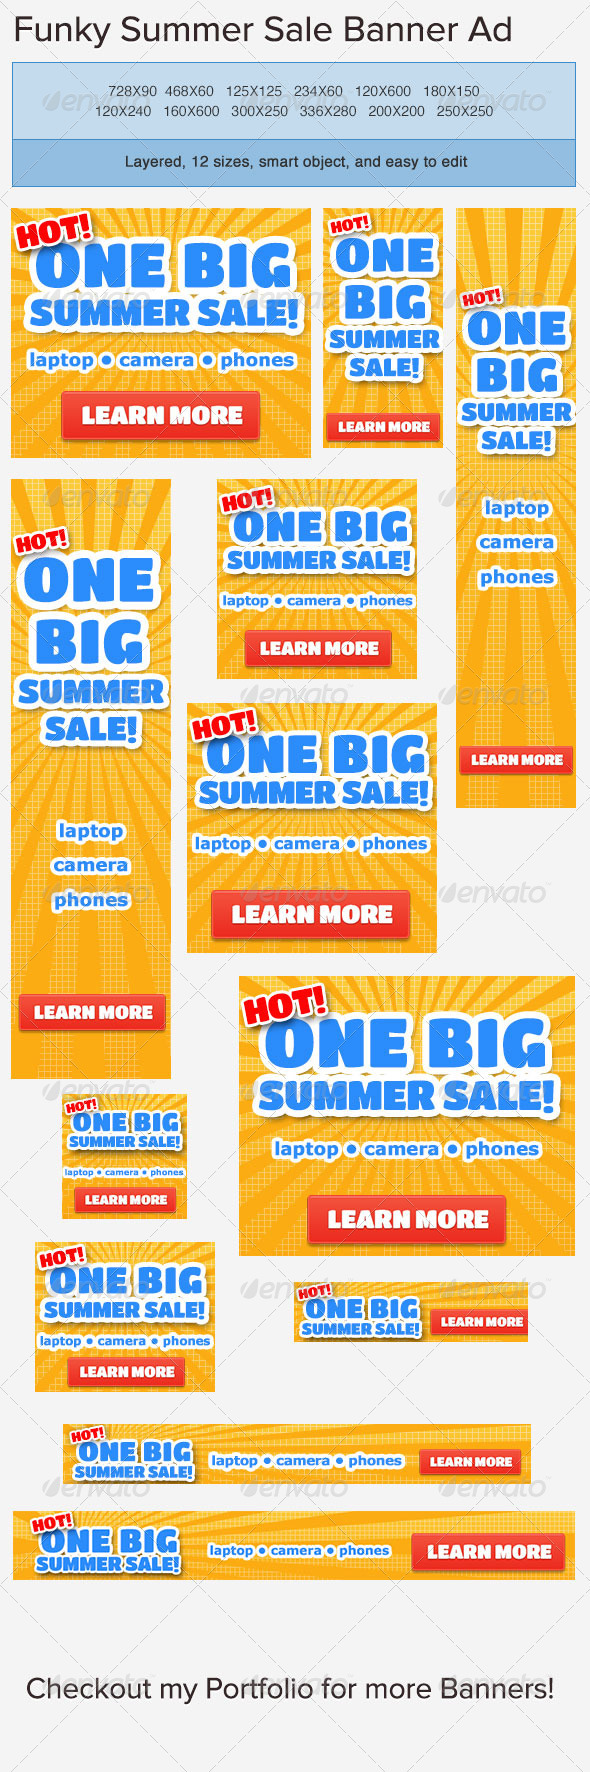 Good Sales Banner Templates  For Sale Ad Template